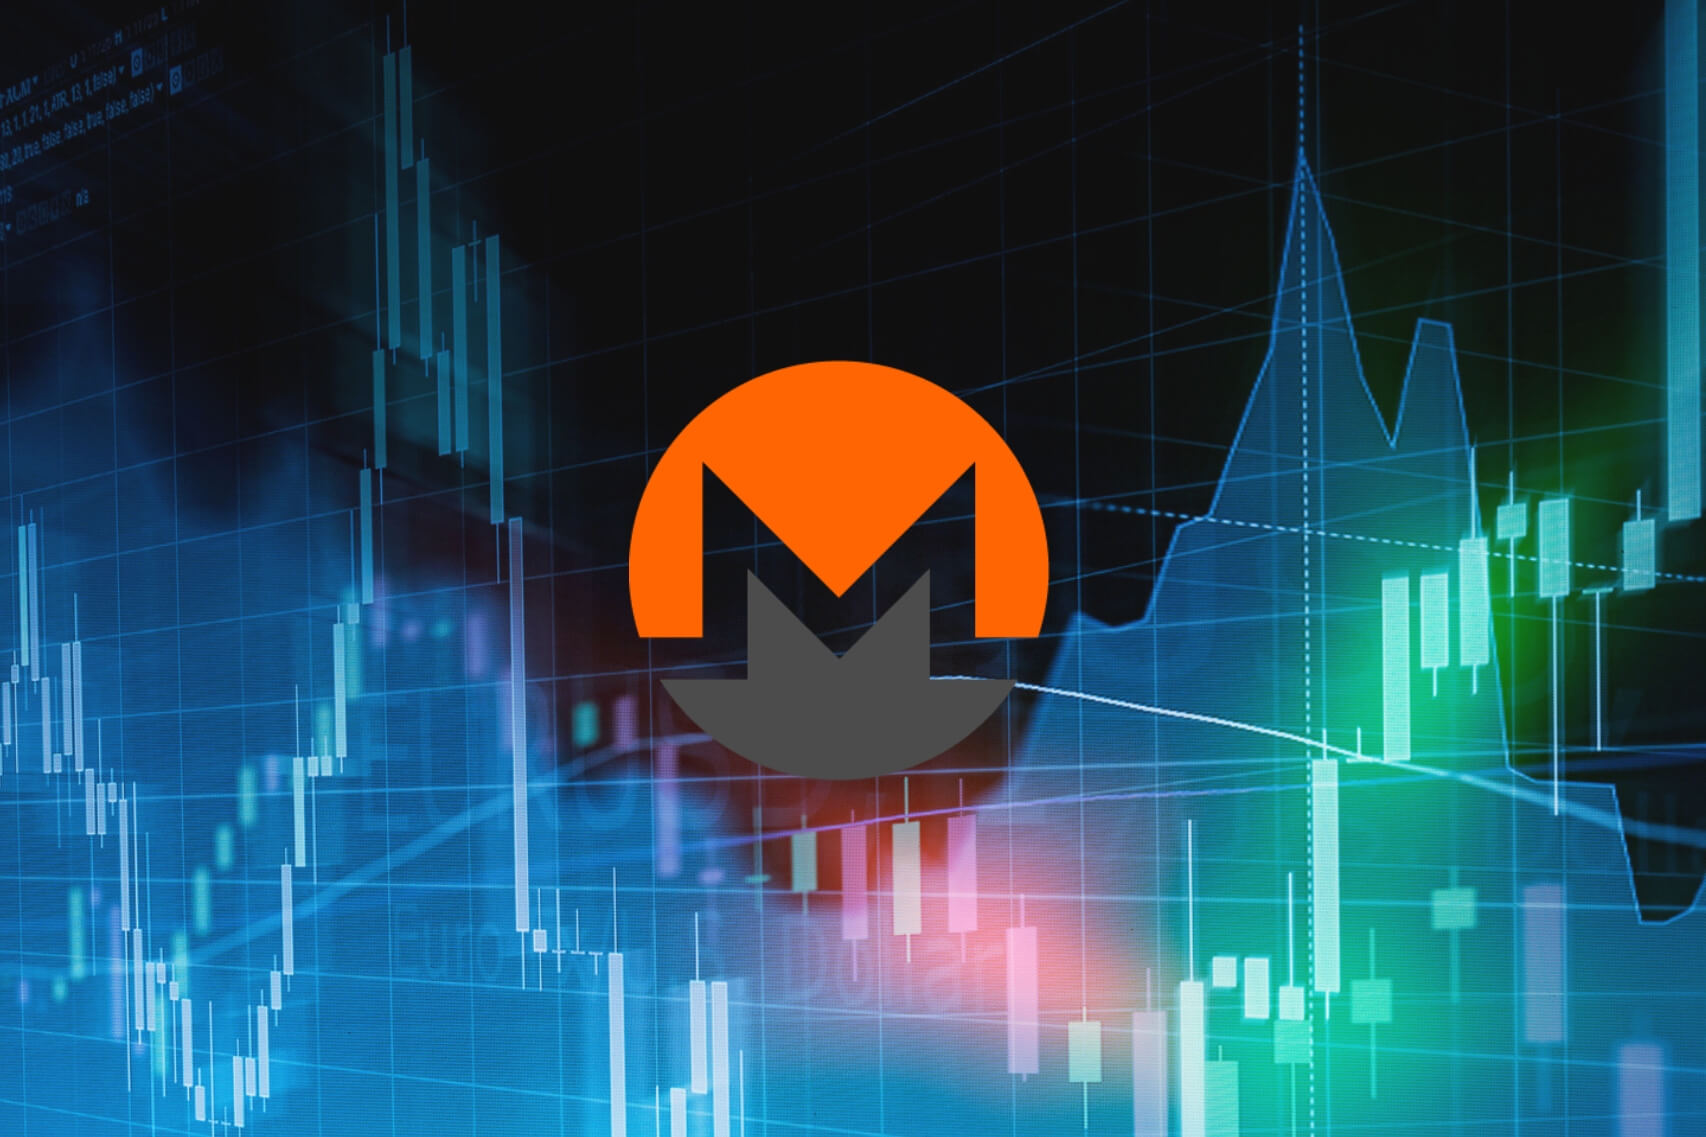 Monero Price Analysis: Can the Bulls Break XMR Out of Its Sideways Movement in October?